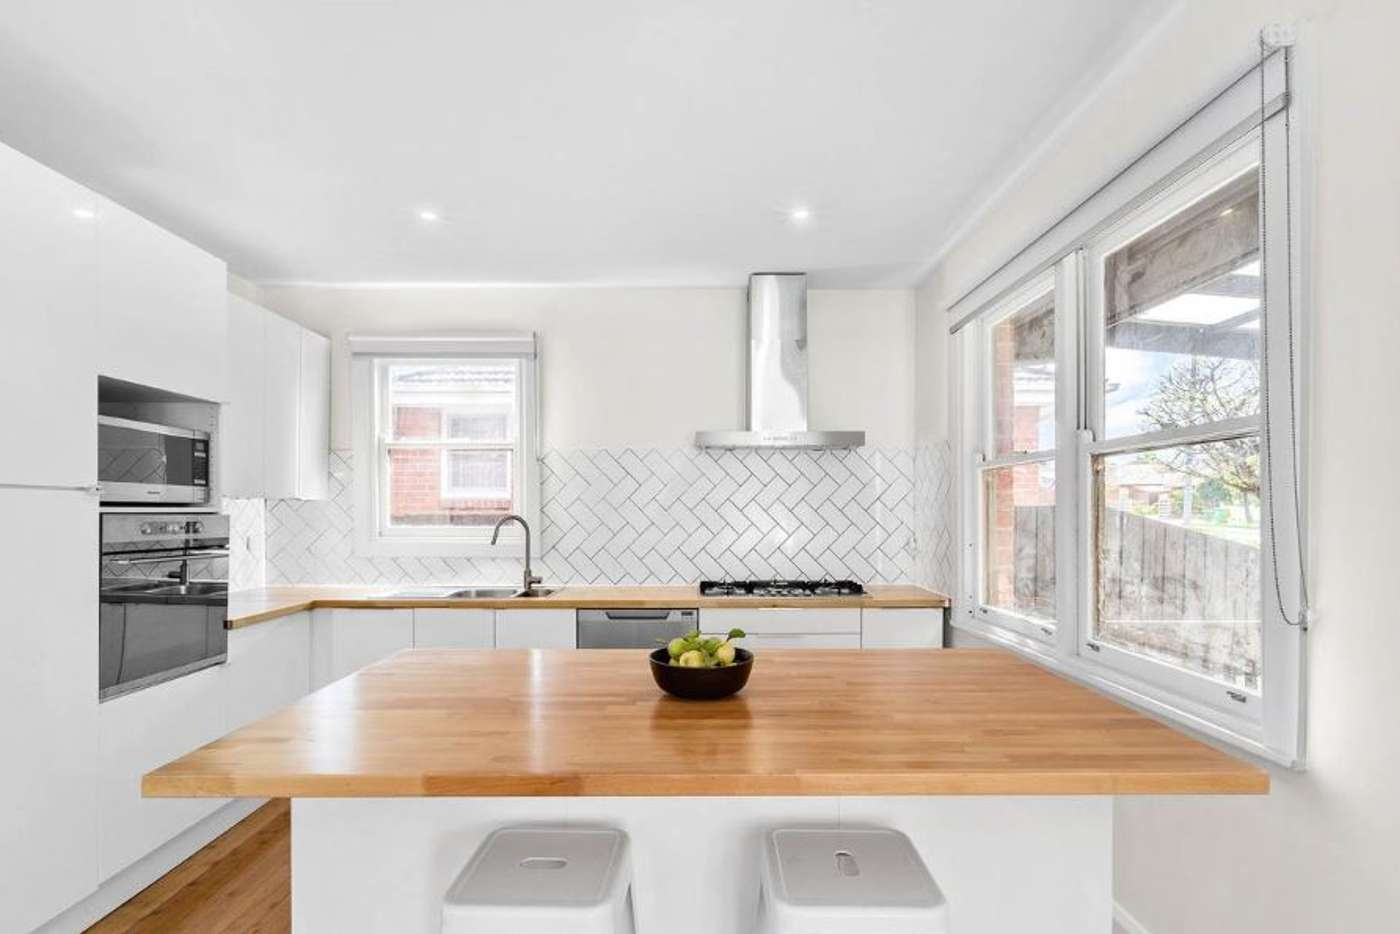 Sixth view of Homely house listing, 141 Albert Street, Preston VIC 3072